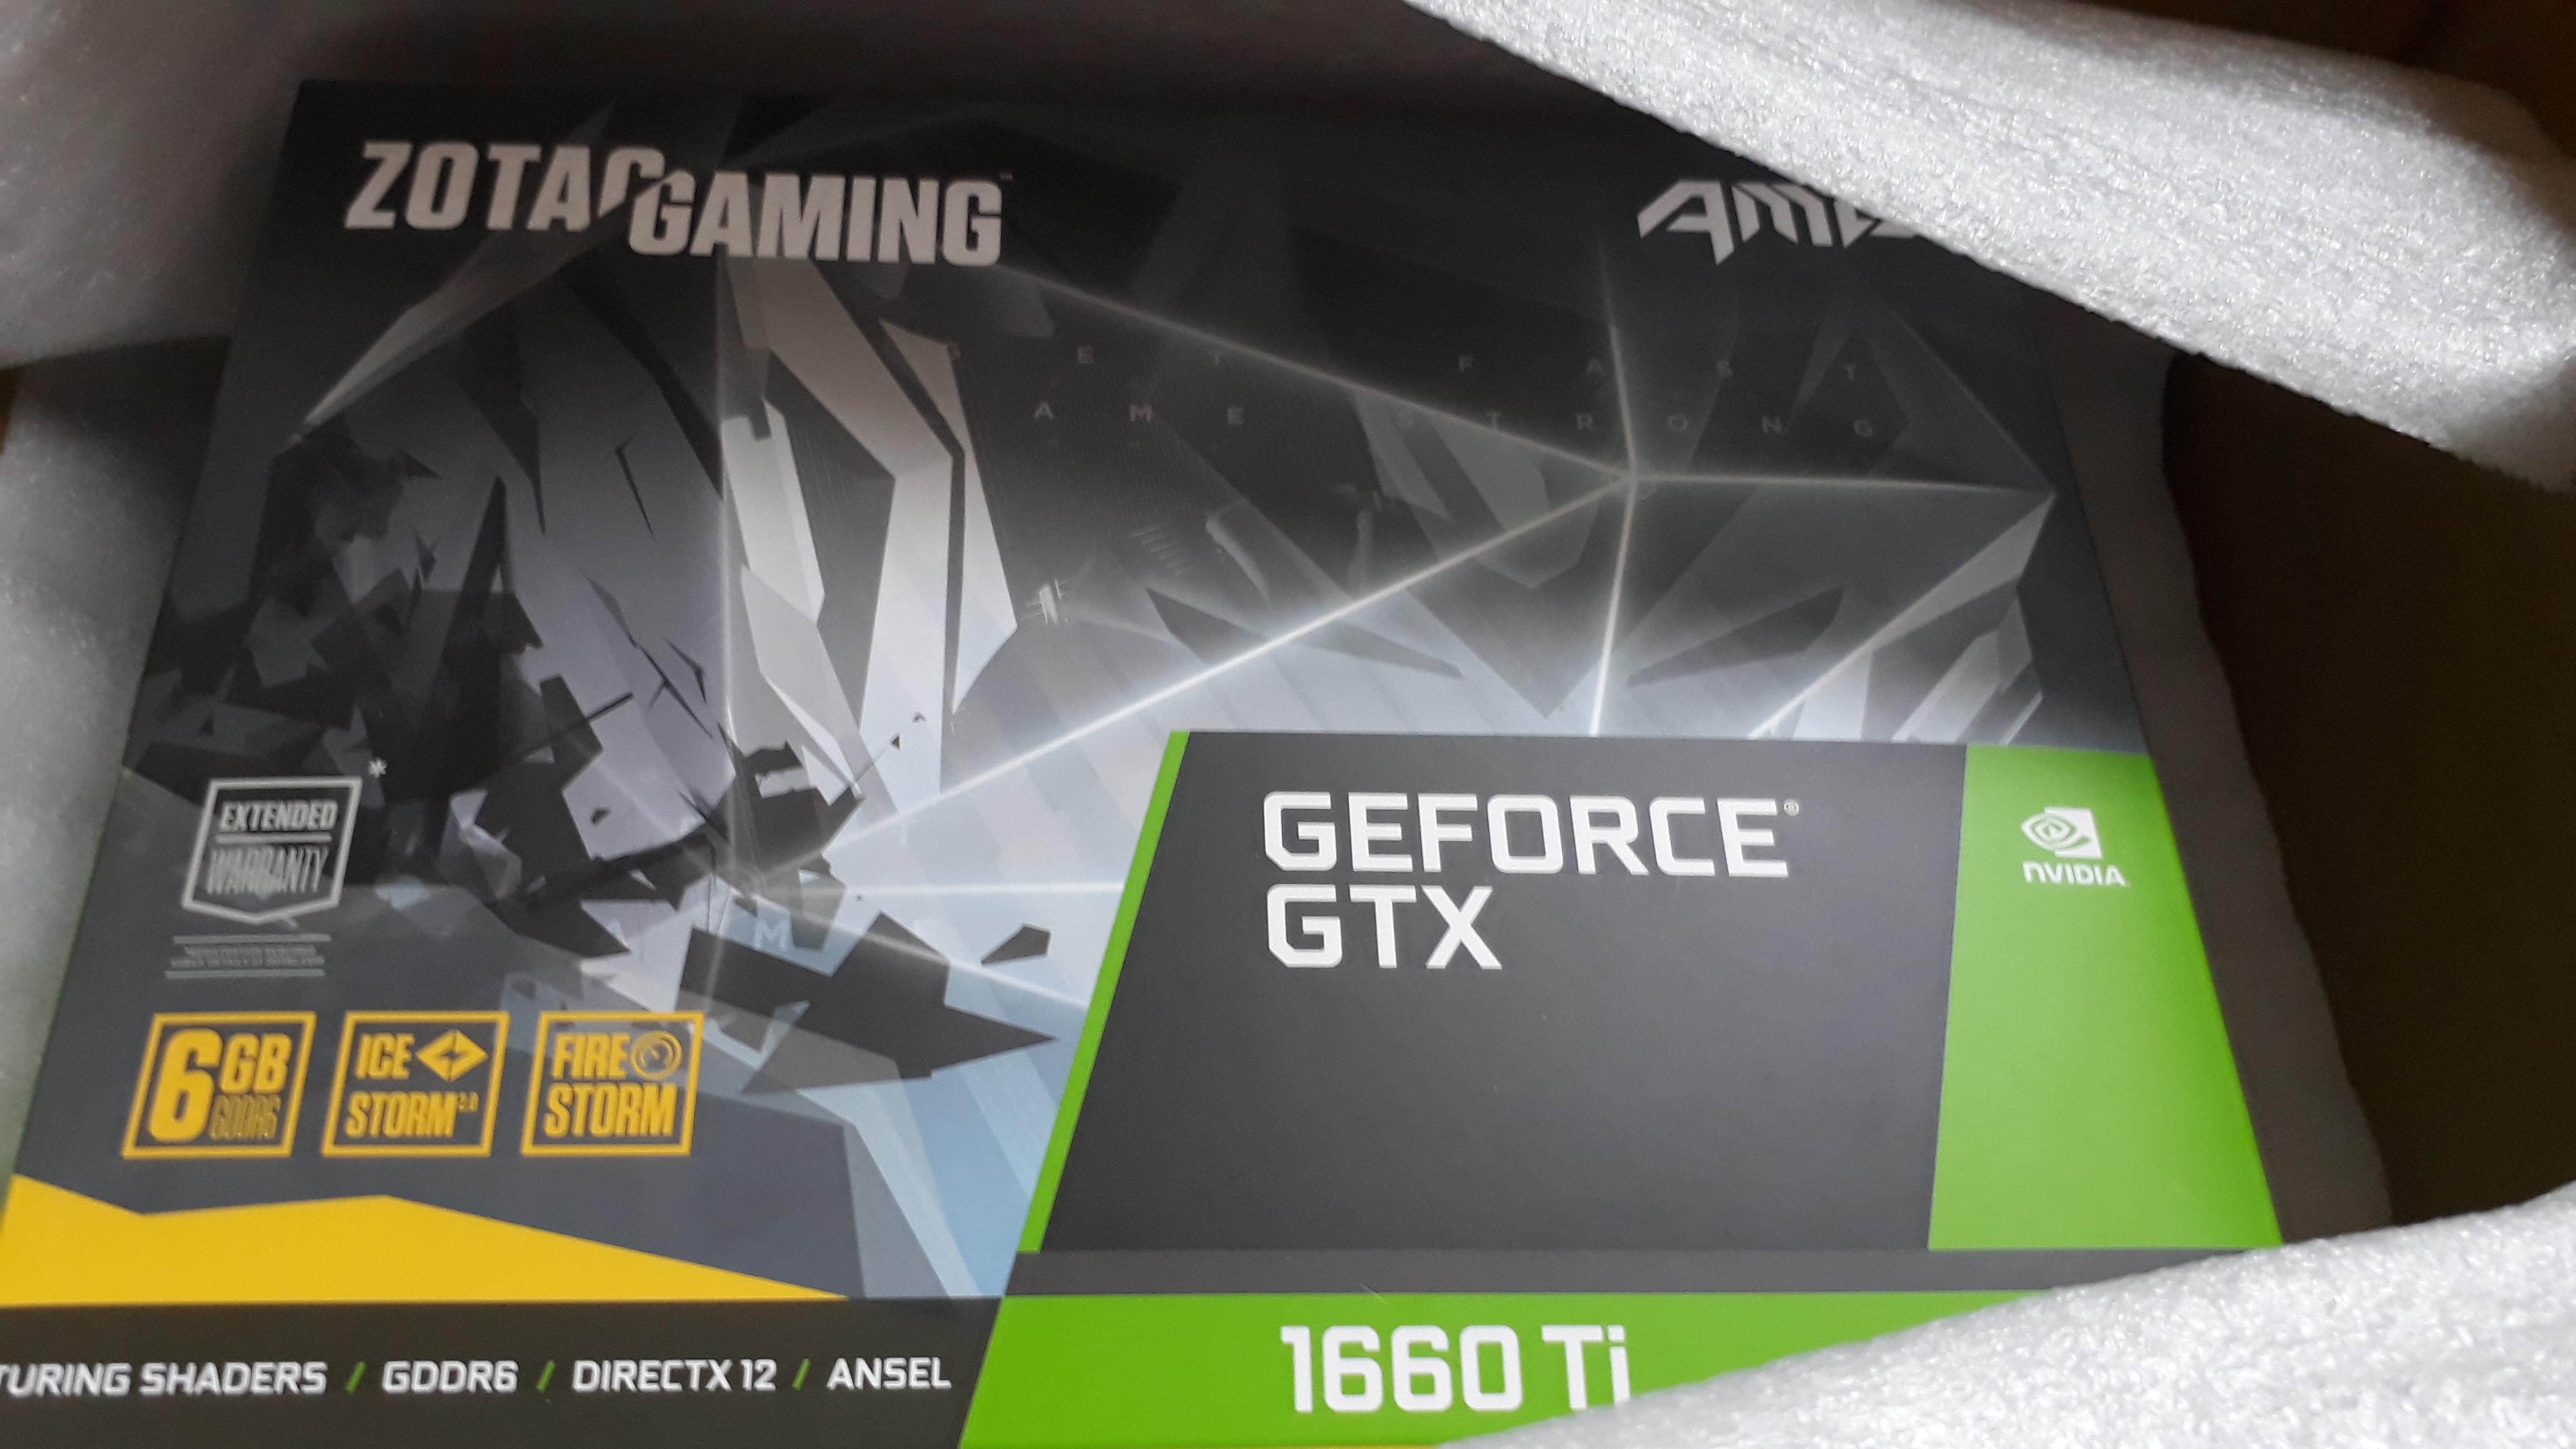 新一代1070殺手 ZOTAC GAMING GeForce GTX 1660 Ti AMP 不專業開箱 - XFastest - 20190327_102950.jpg